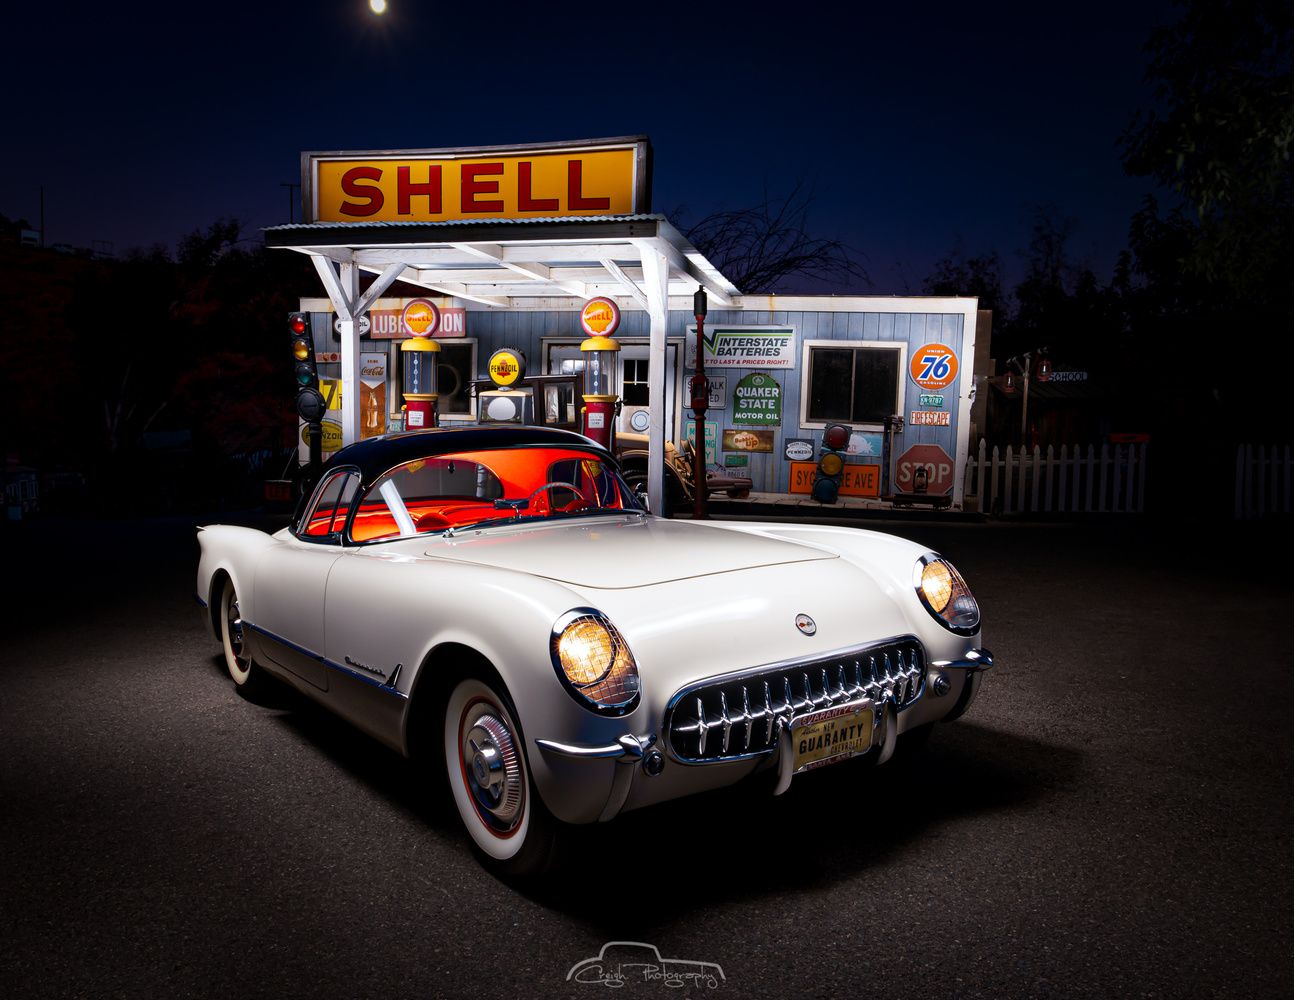 First Year '53 Chevy Corvette by Creigh McIntyre